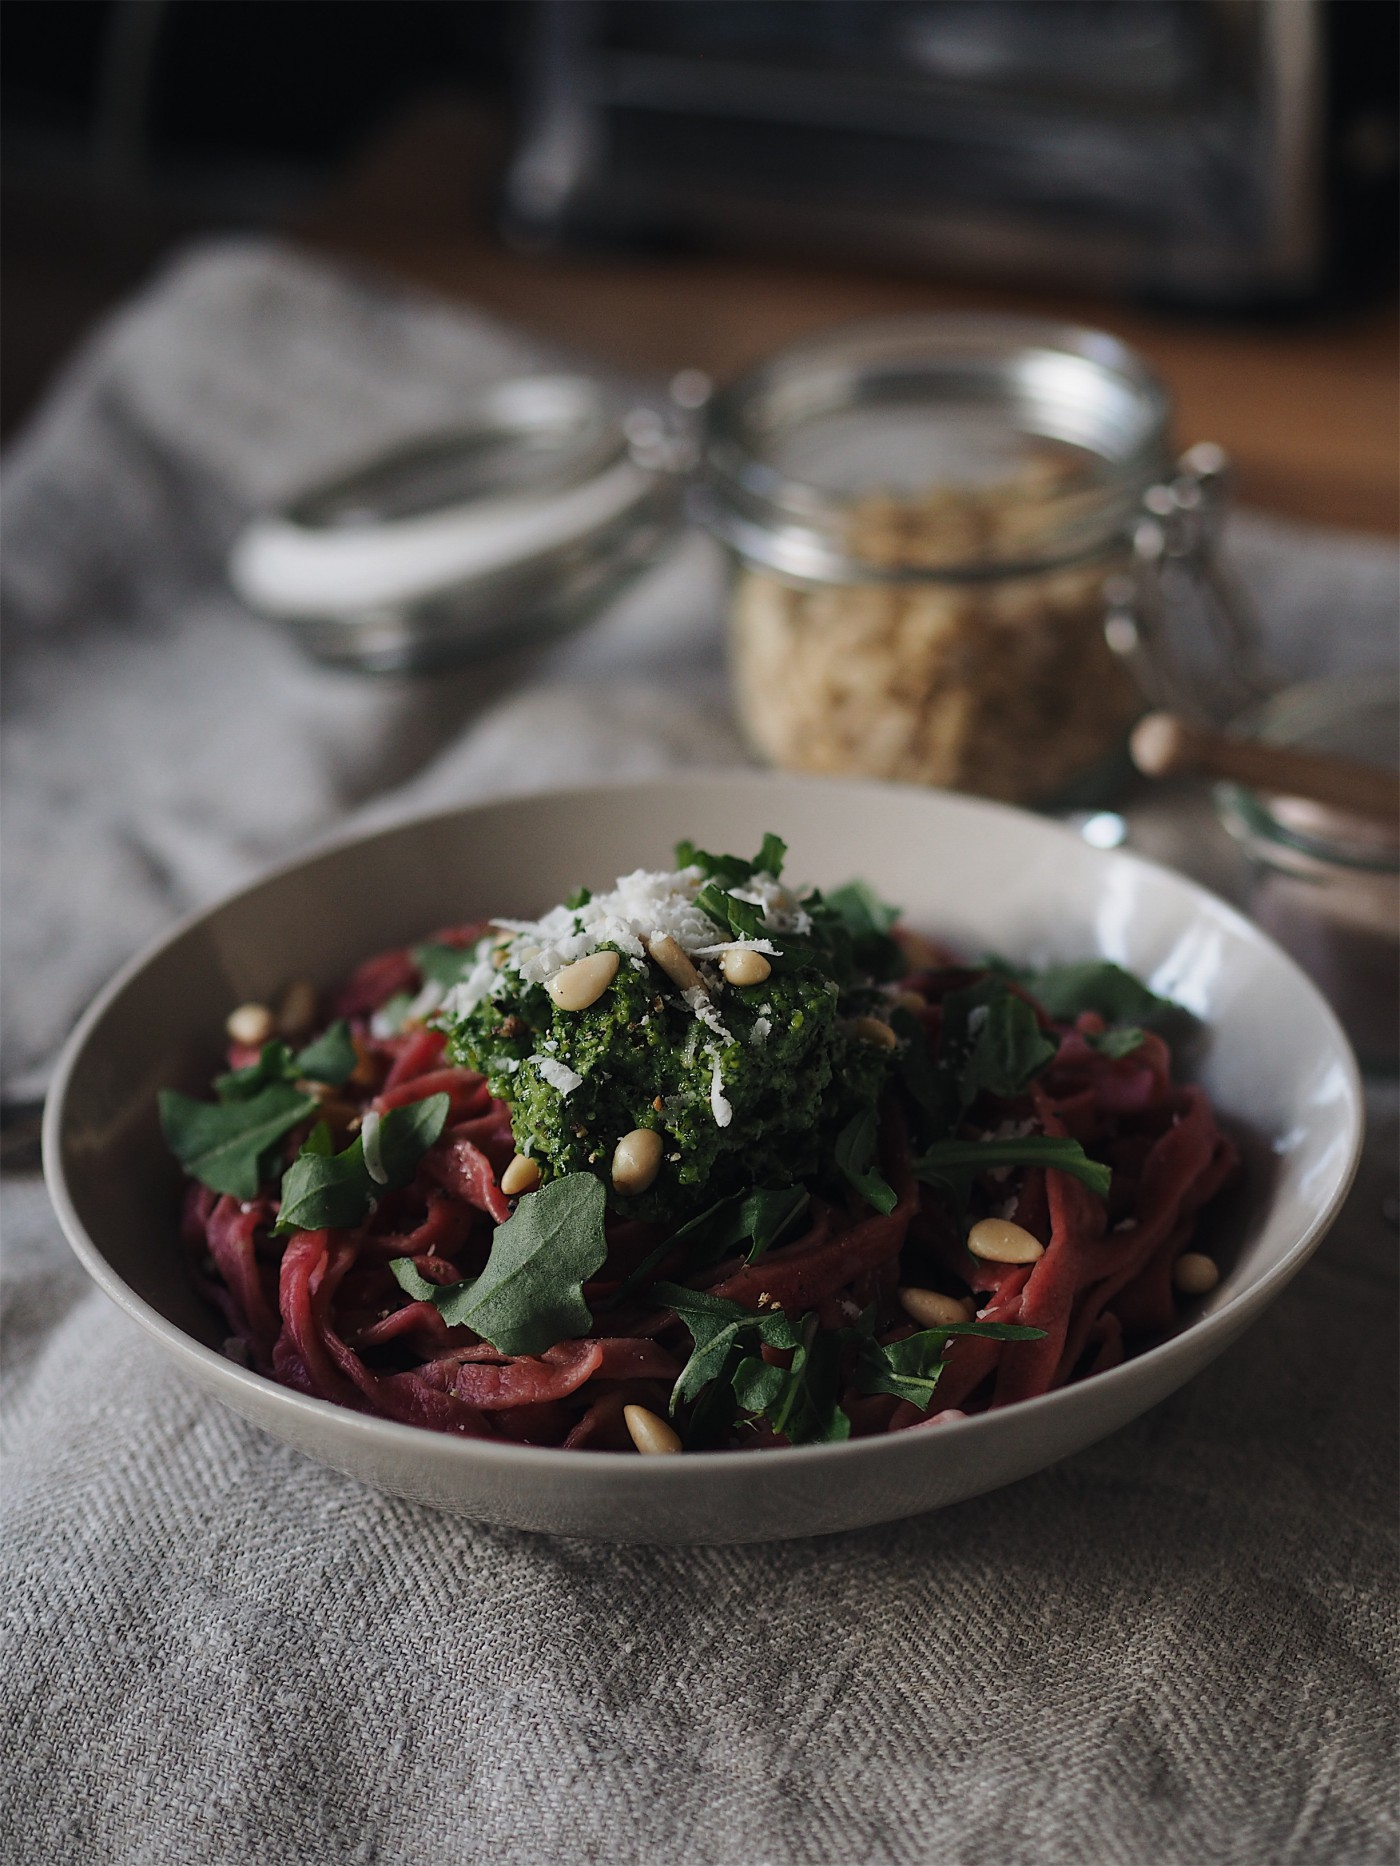 evafedeveka photography food homemade beets pasta with rocket pesto